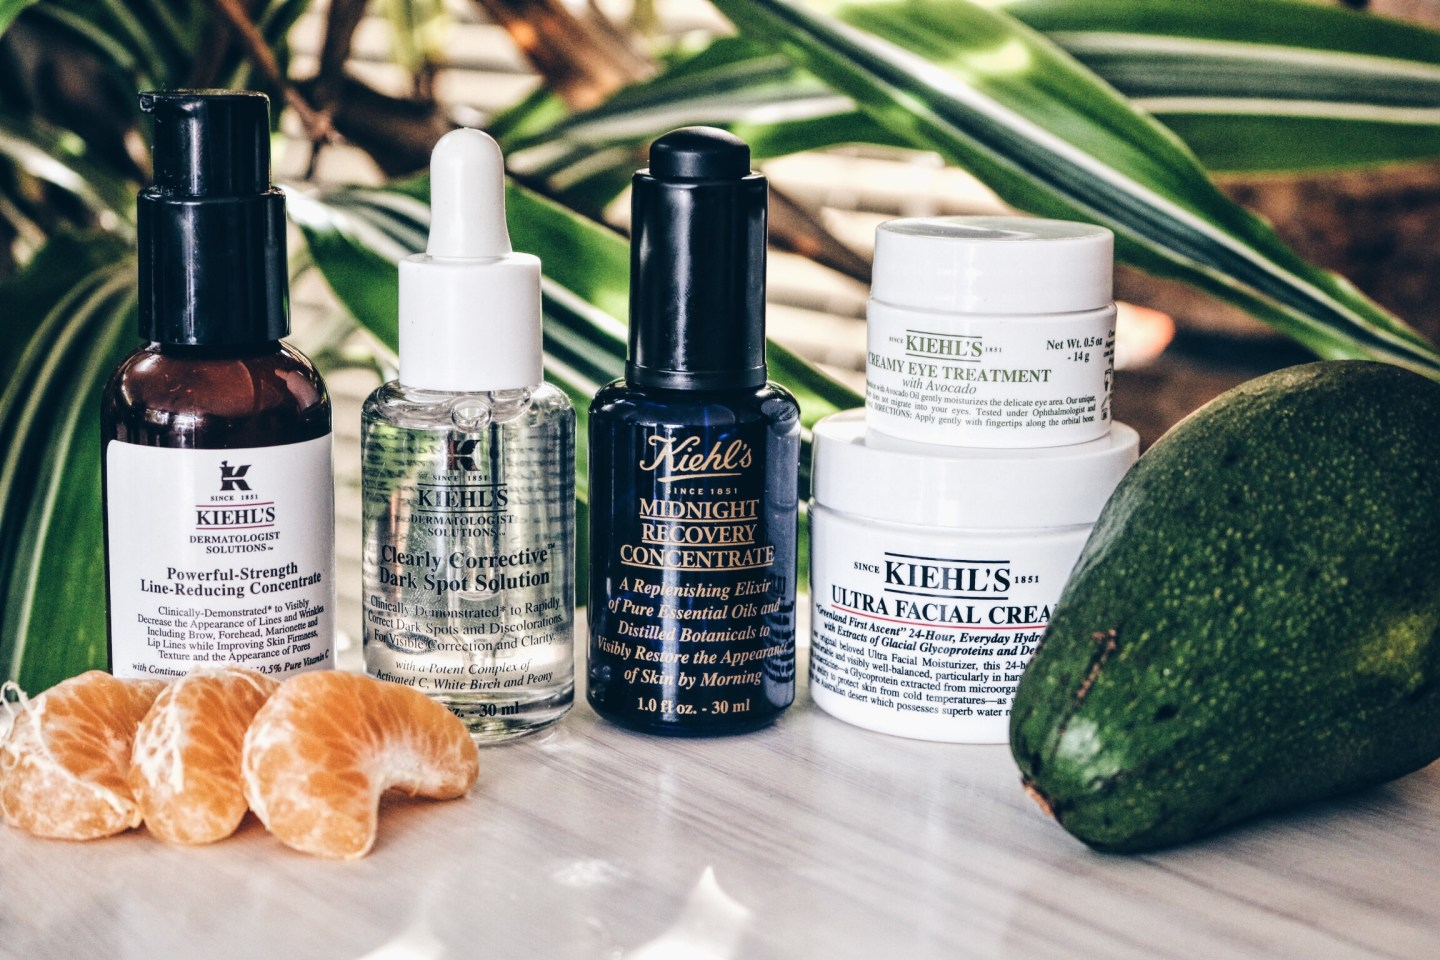 Changing My Skin One Day At A Time With Kiehl's